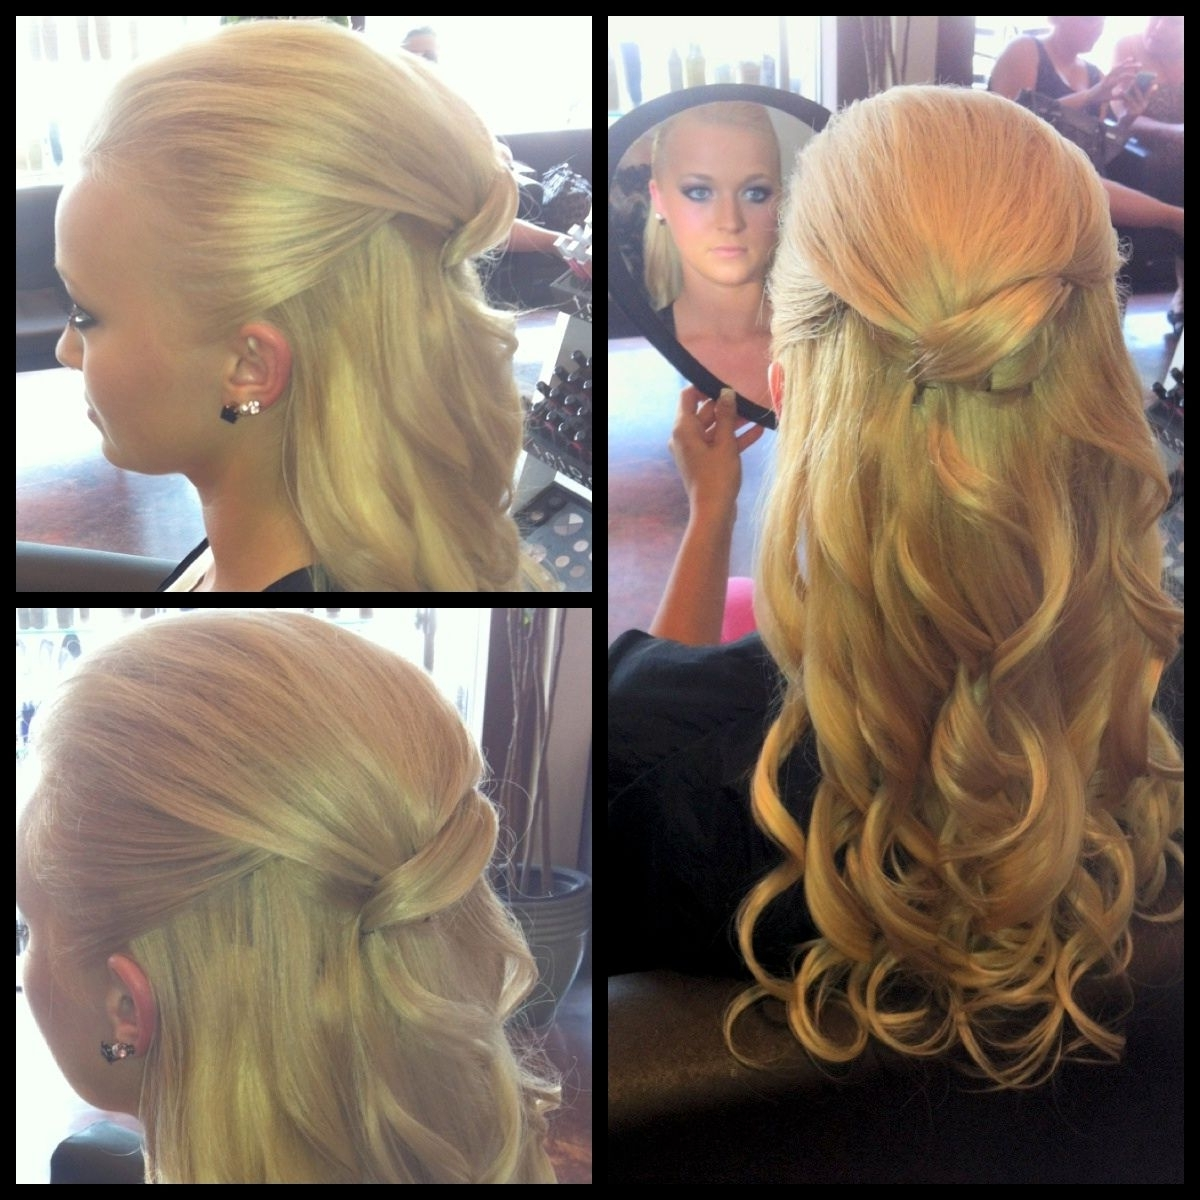 1/2 Updo Style Thin Blonde Hair With Clip In Hair Extensions For Hair Extensions Updo Hairstyles (View 13 of 15)